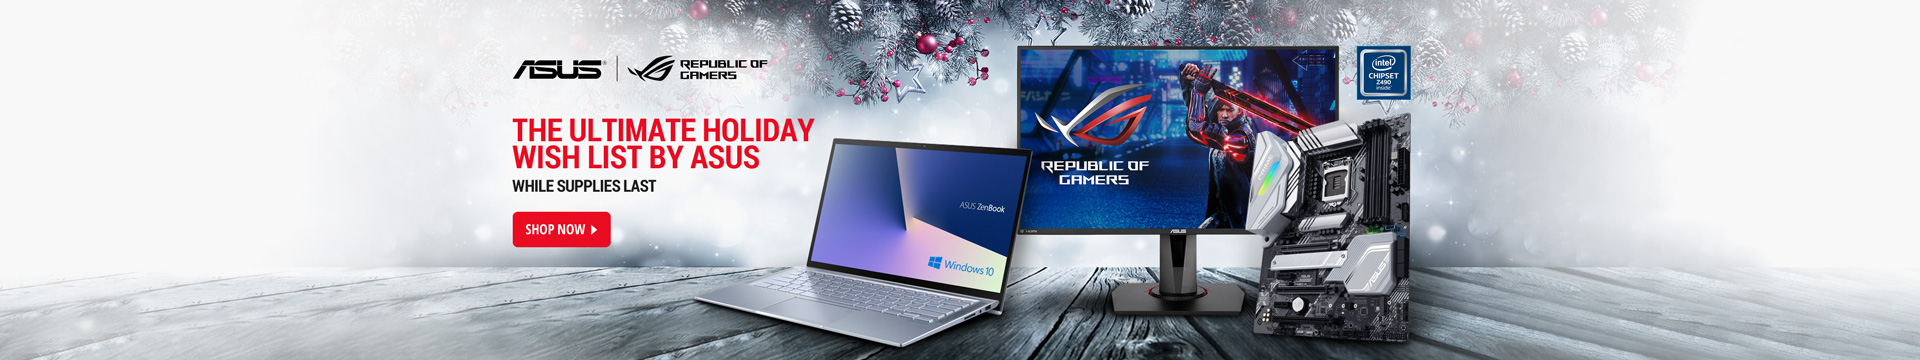 The Ultimate Holiday Wish List by Asus